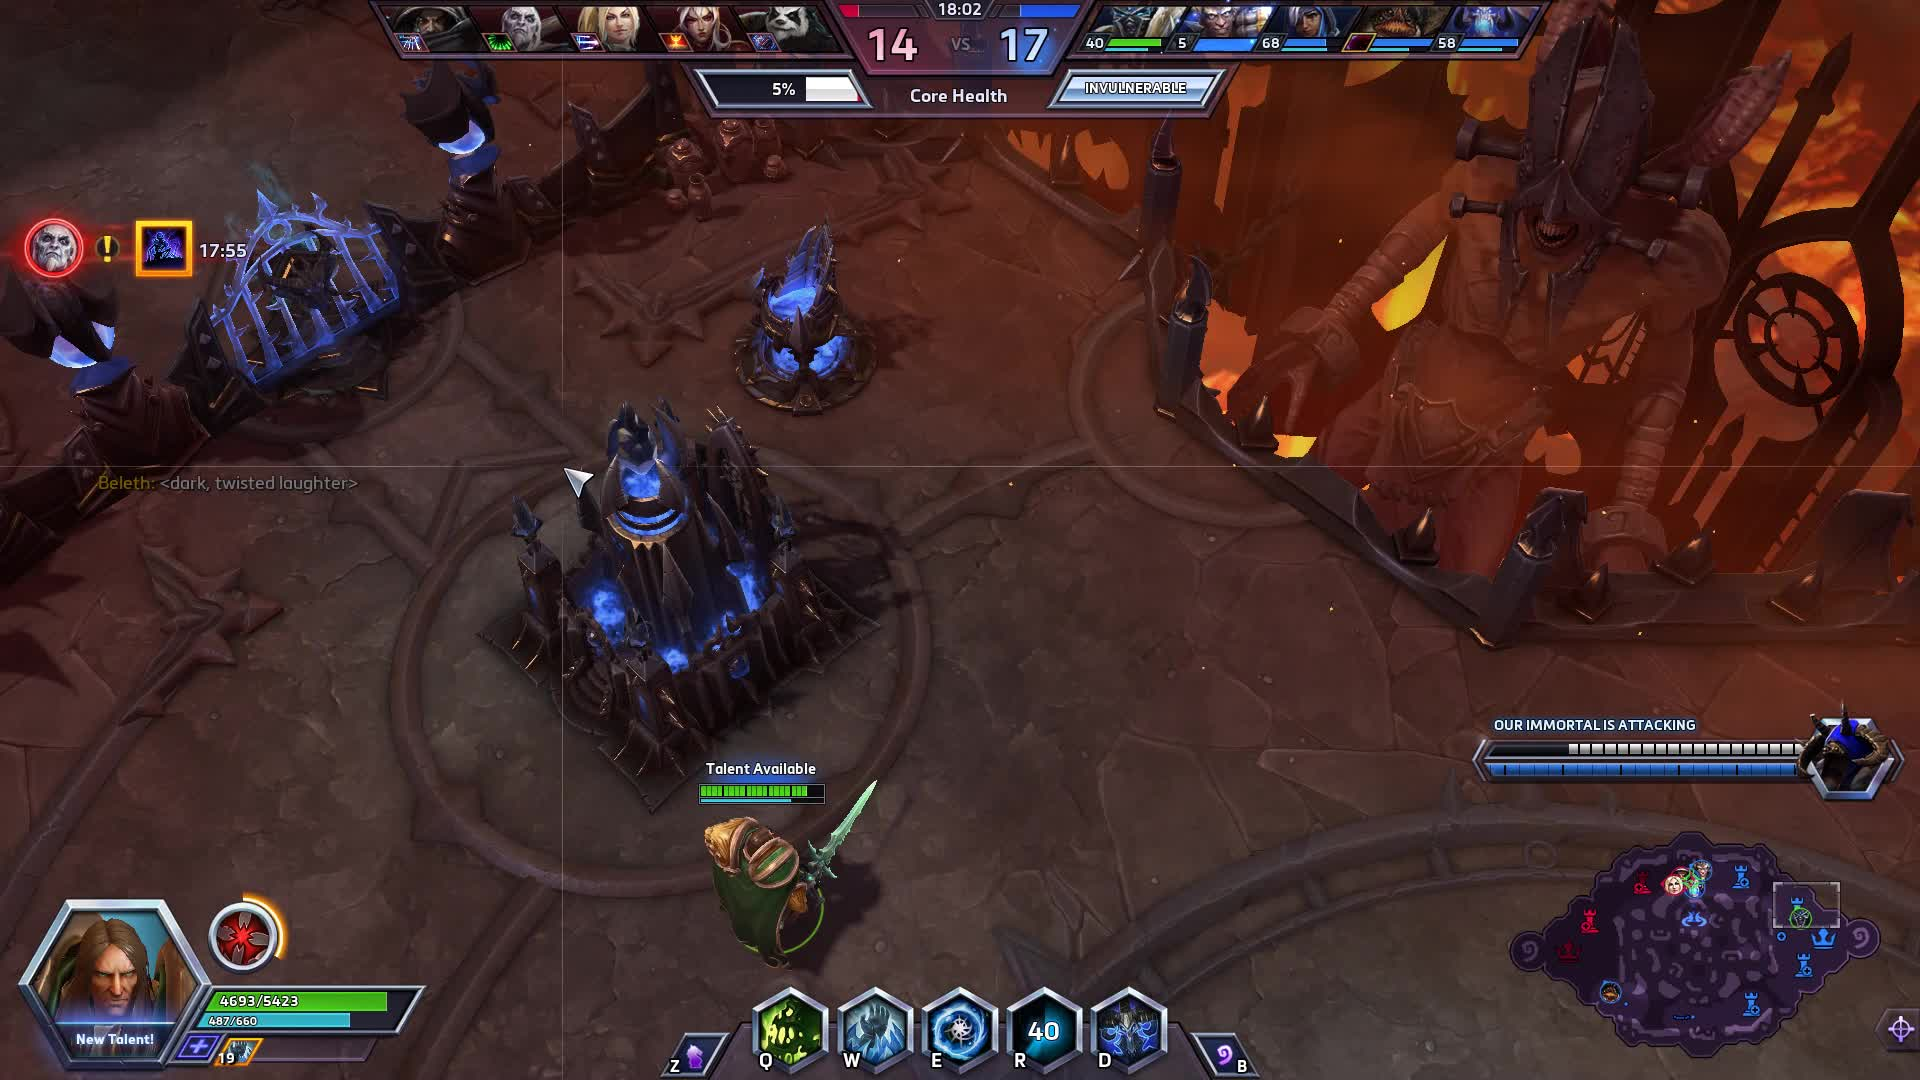 heroesofthestorm, Heroes of the Storm 2019.04.14 - 17.36.48.01 GIFs